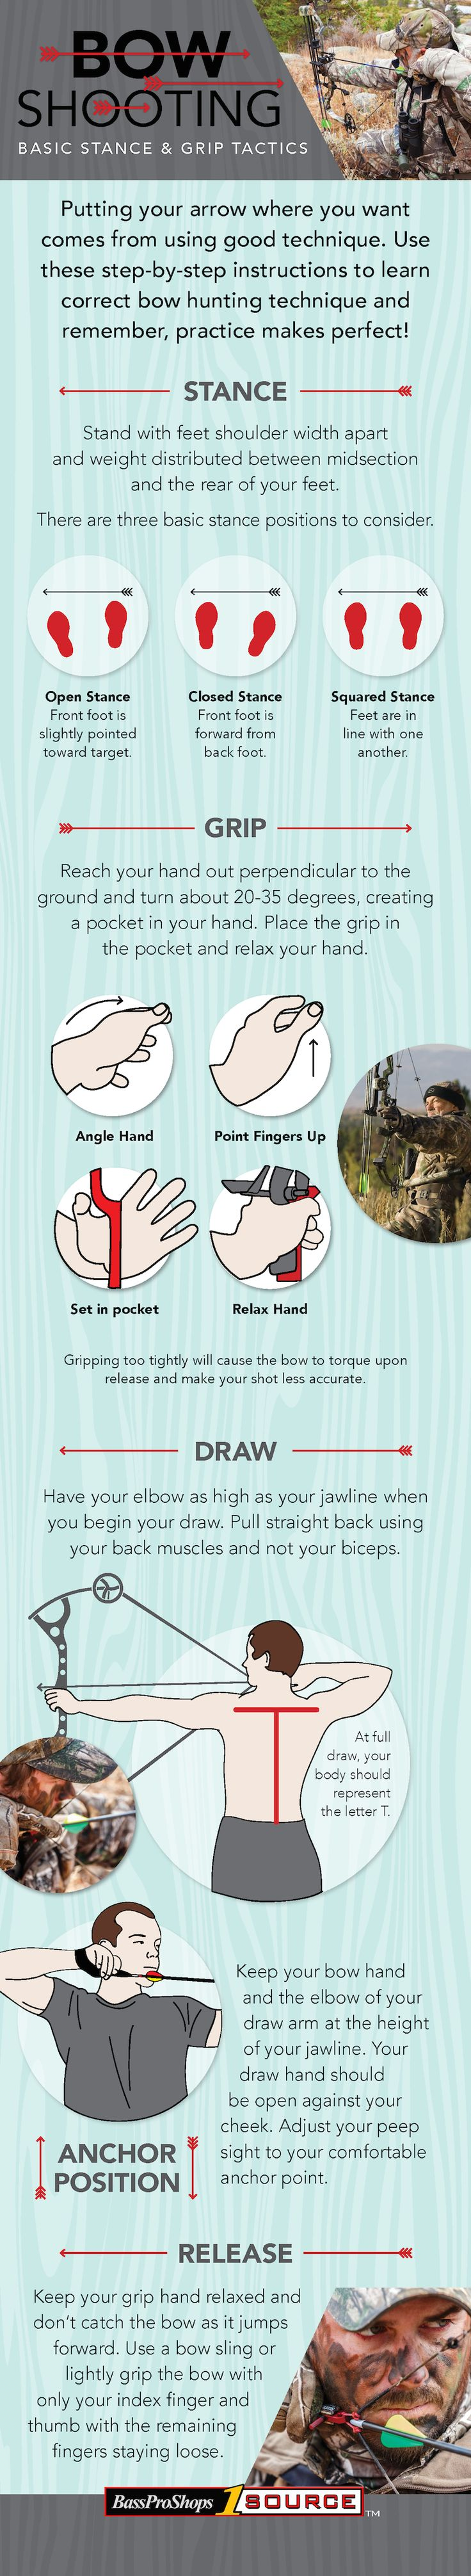 5 Steps to Bow Shooting Basics: Stance Grip Tactics- http://www.waldenfarmandranch.com/ now has Texas Hunter Products at our Mineral Wells store! Come visit us for all your hunting needs!